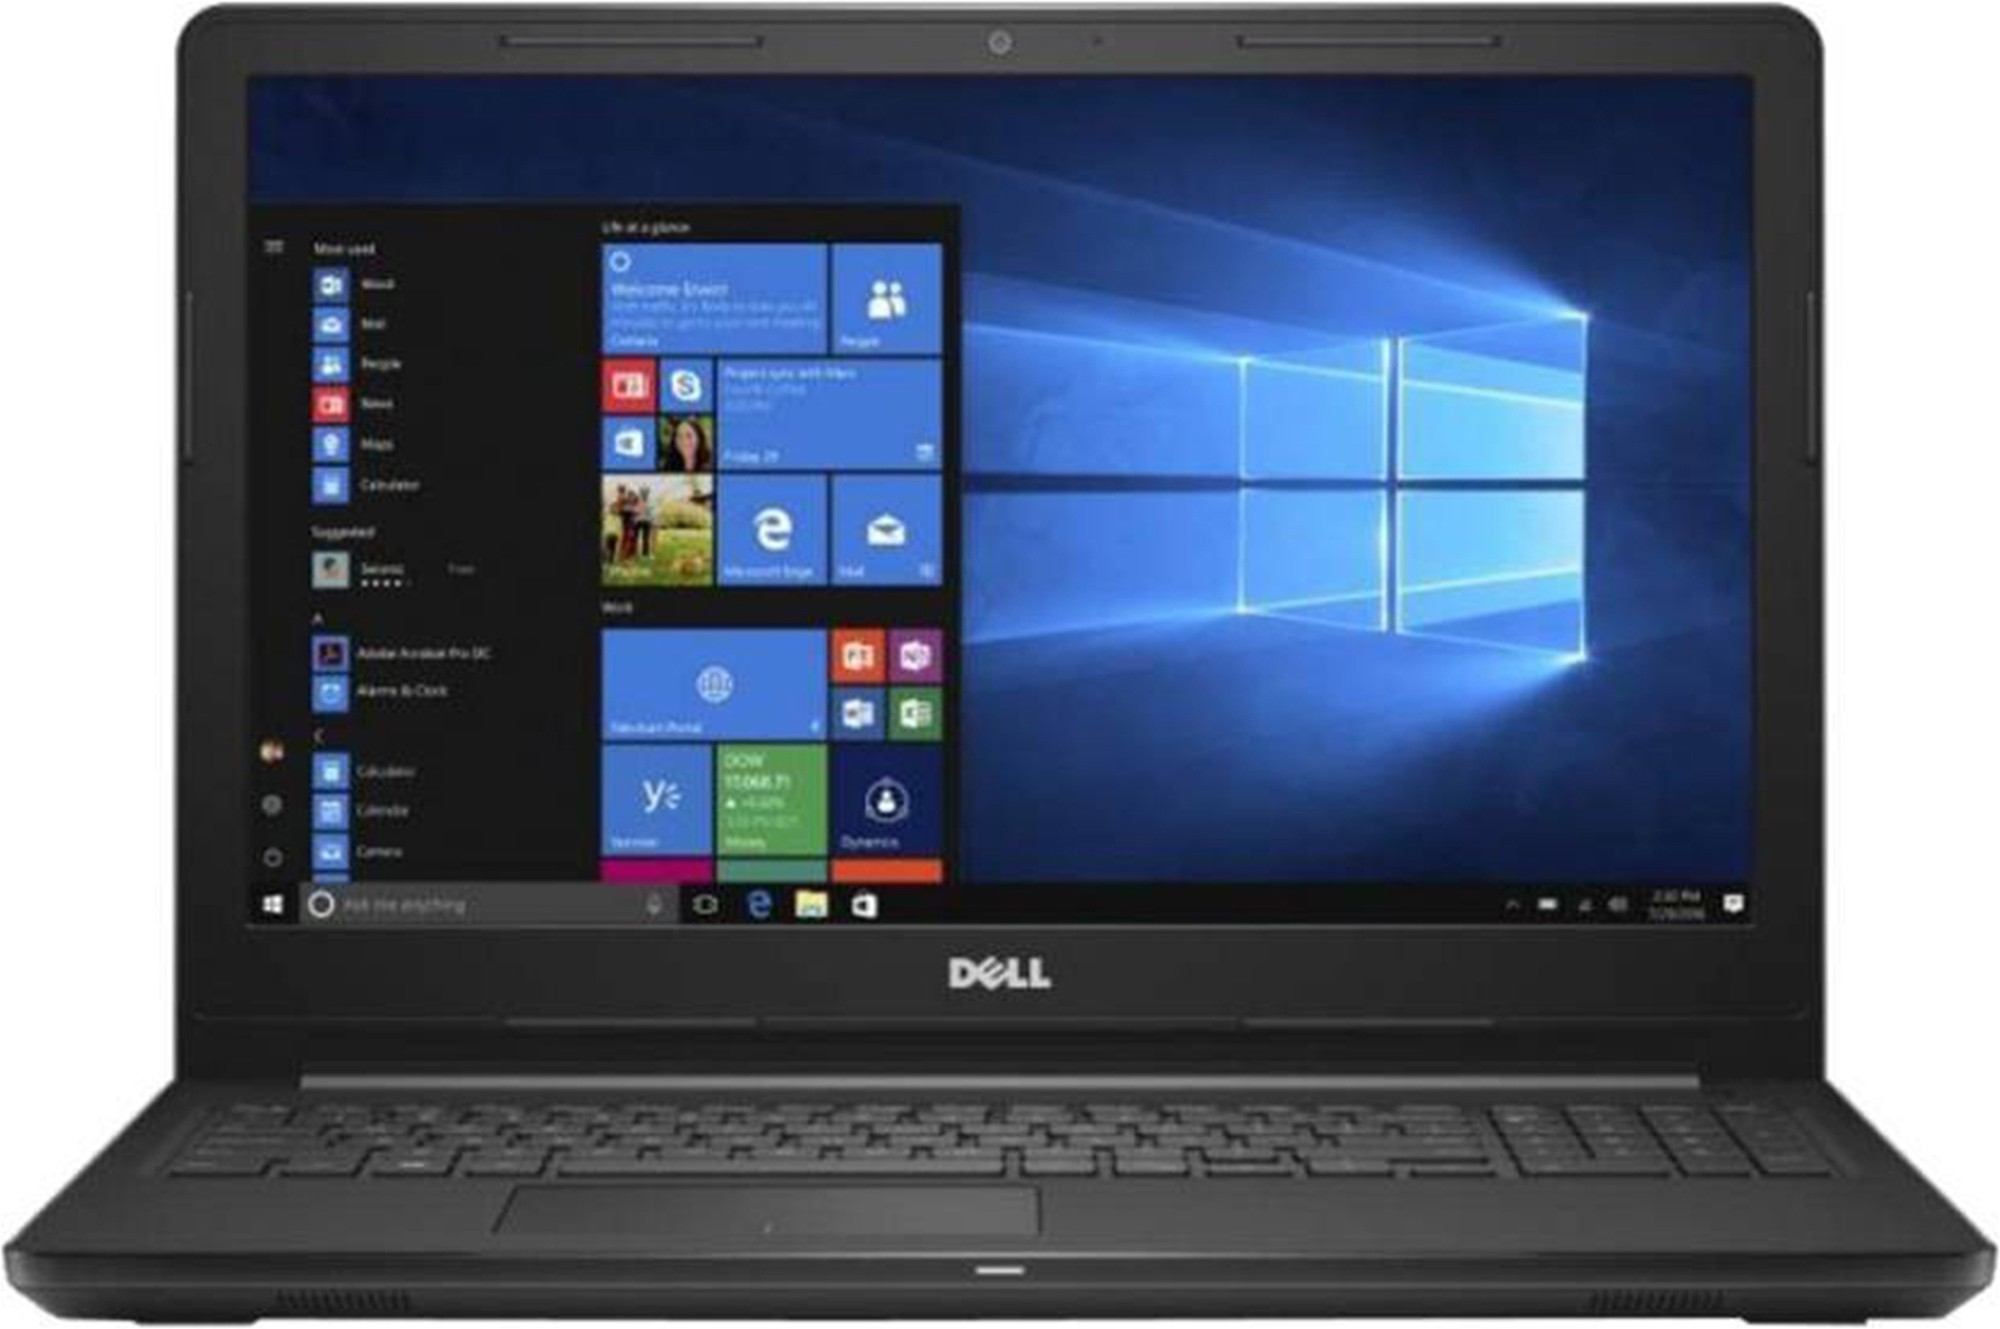 Dell Inspiron 15 3000 Series Core i3 7th Gen 3567 Laptop Image